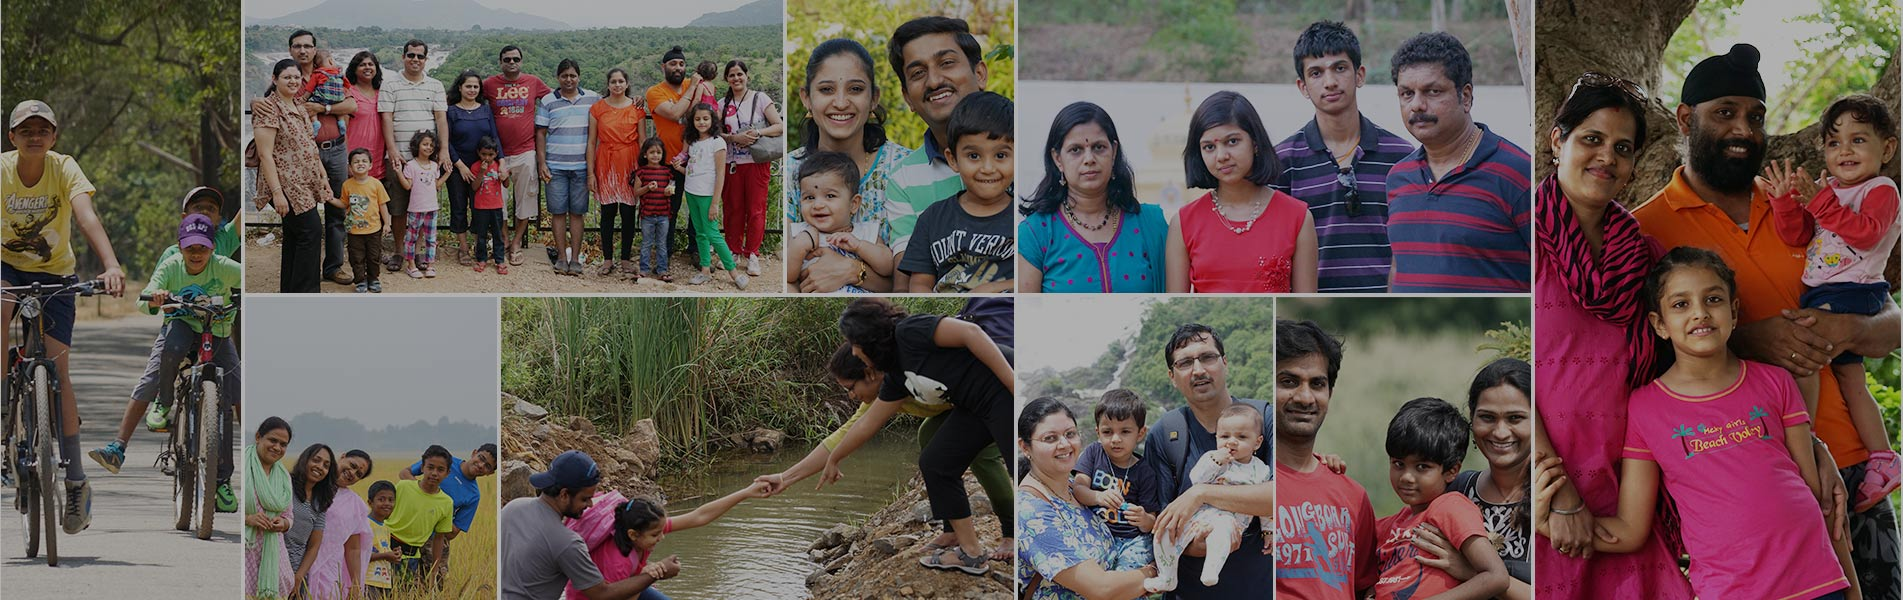 Happy and funfilled family outing resorts near Bangalore. Best place to view amazing waterfalls at Shivanasamudra